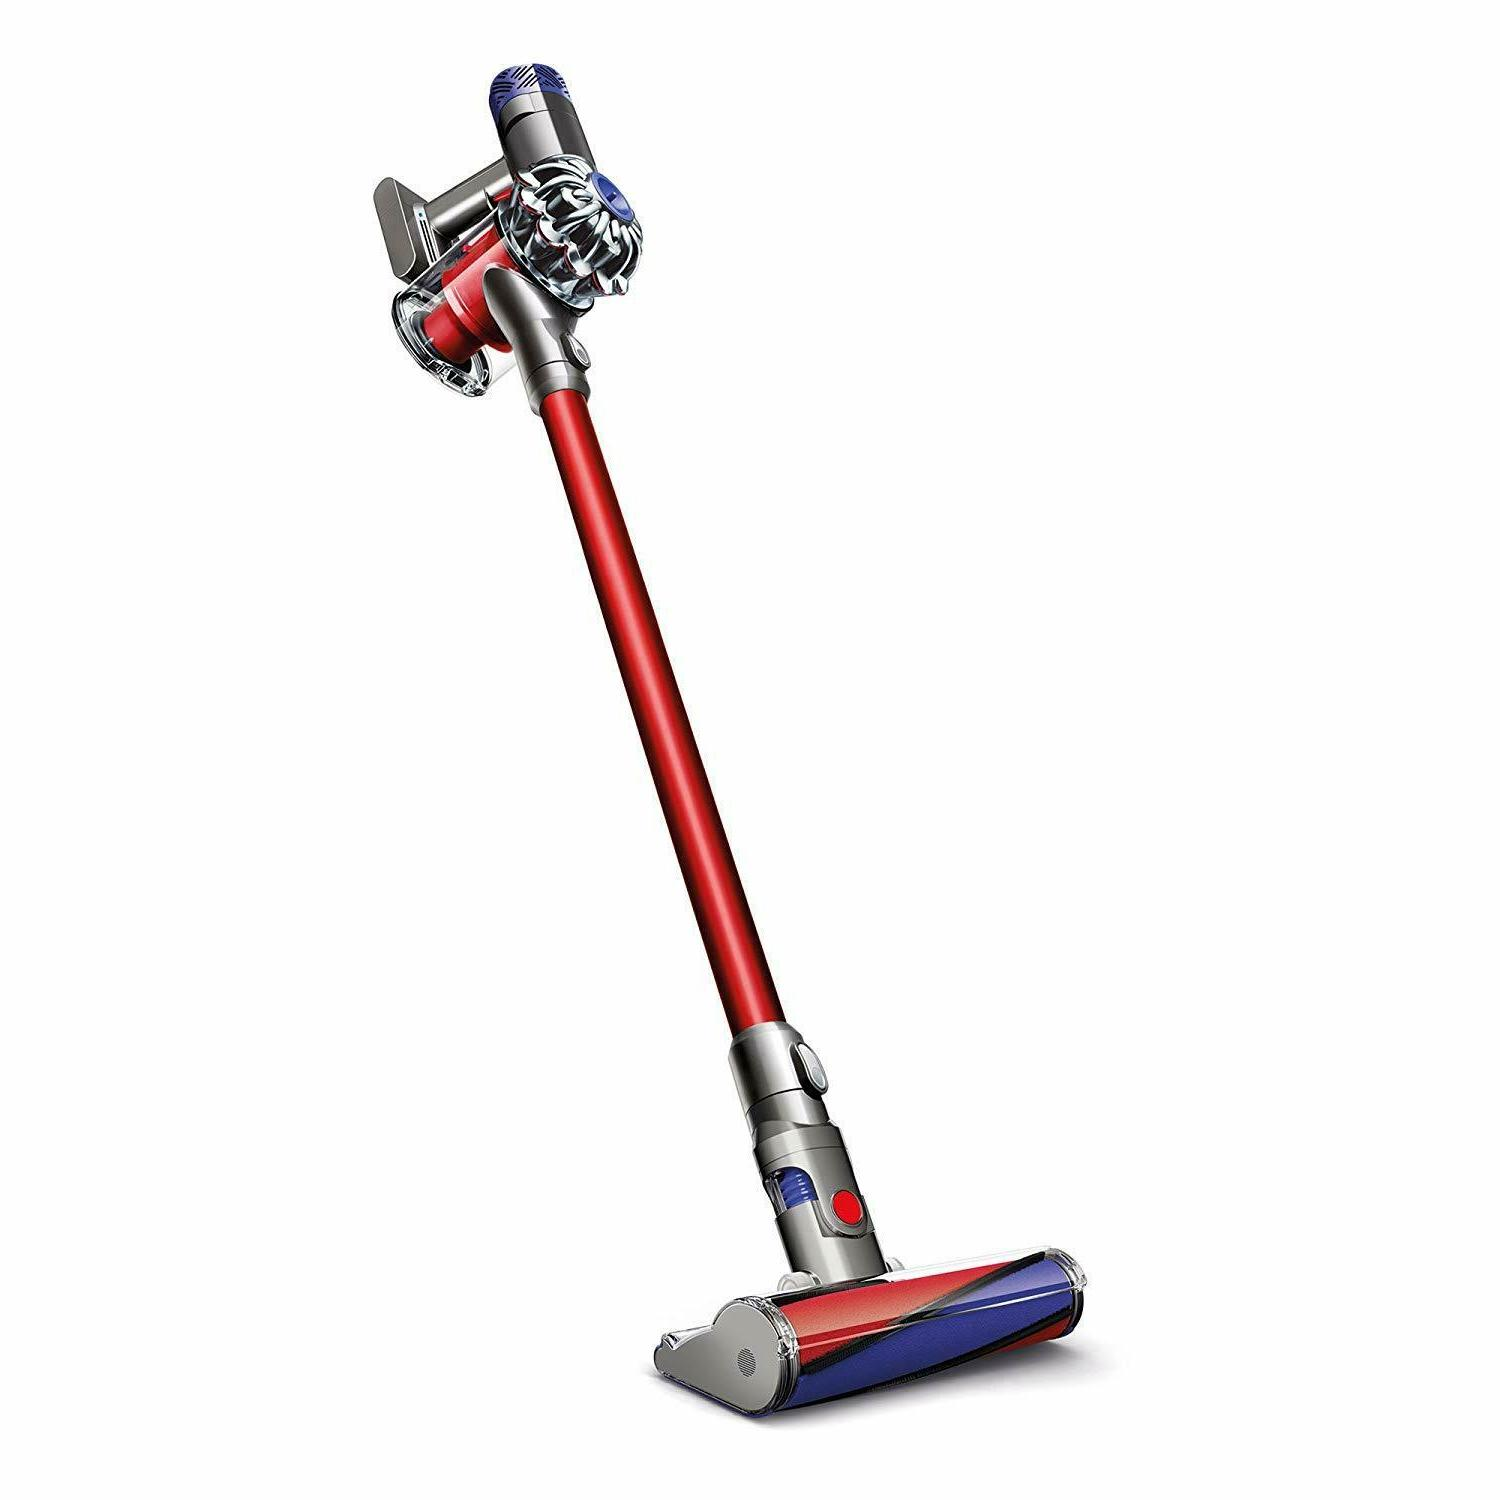 v6 absolute cordless stick vacuum cleaner red